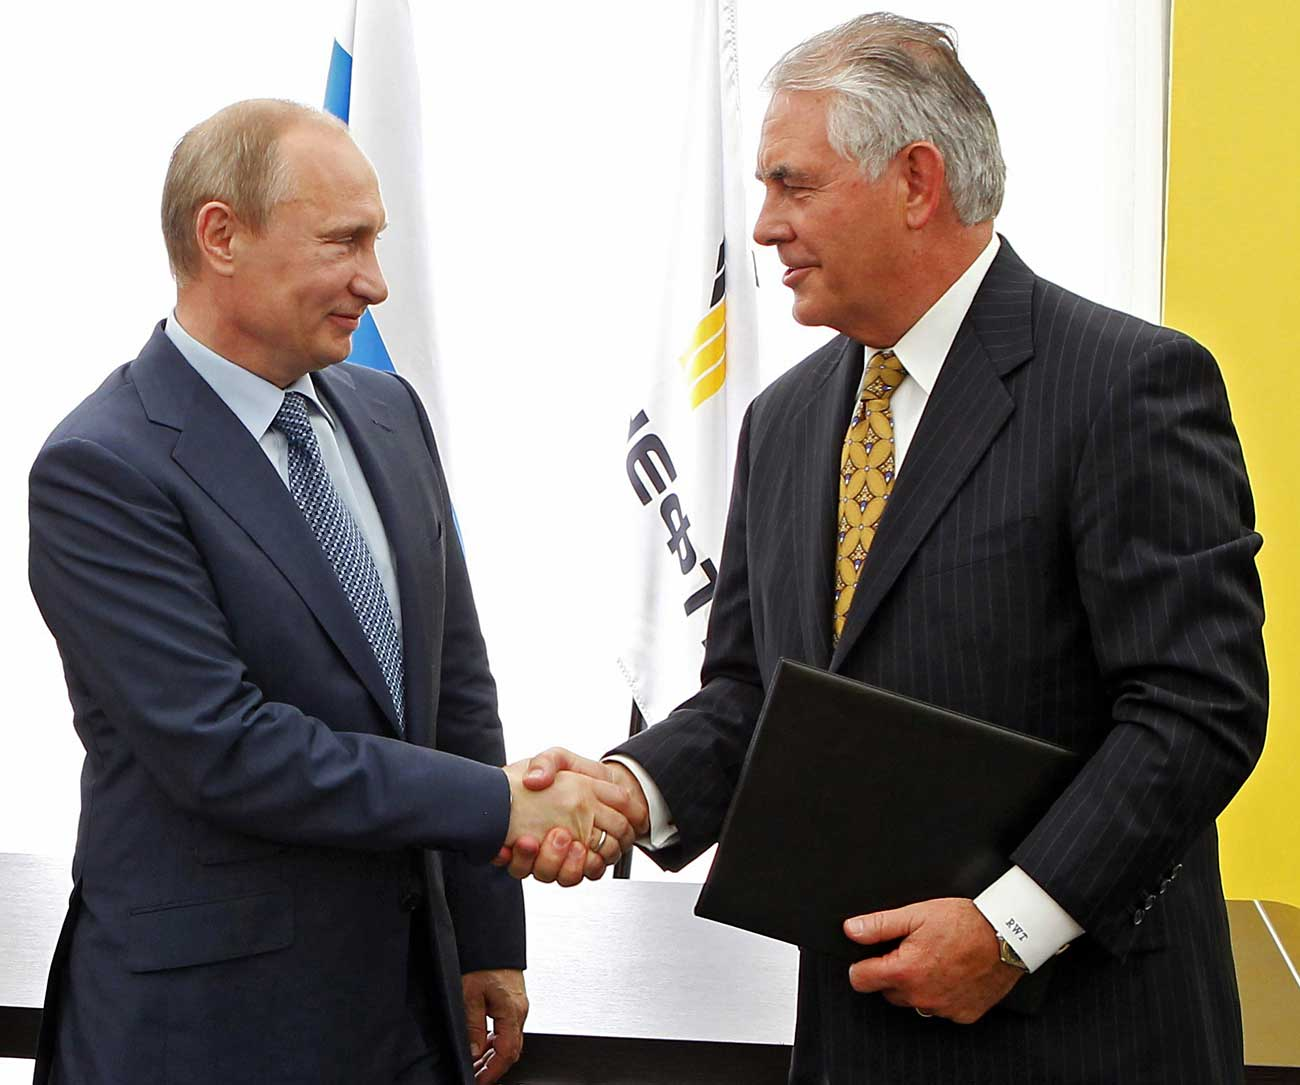 Russian President Vladimir Putin and ExxonMobil CEO Rex Tillerson shake hands at a signing ceremony of an agreement between state-controlled Russian oil company Rosneft and ExxonMobil at the Black Sea port of Tuapse, southern Russia, June 15, 2012.